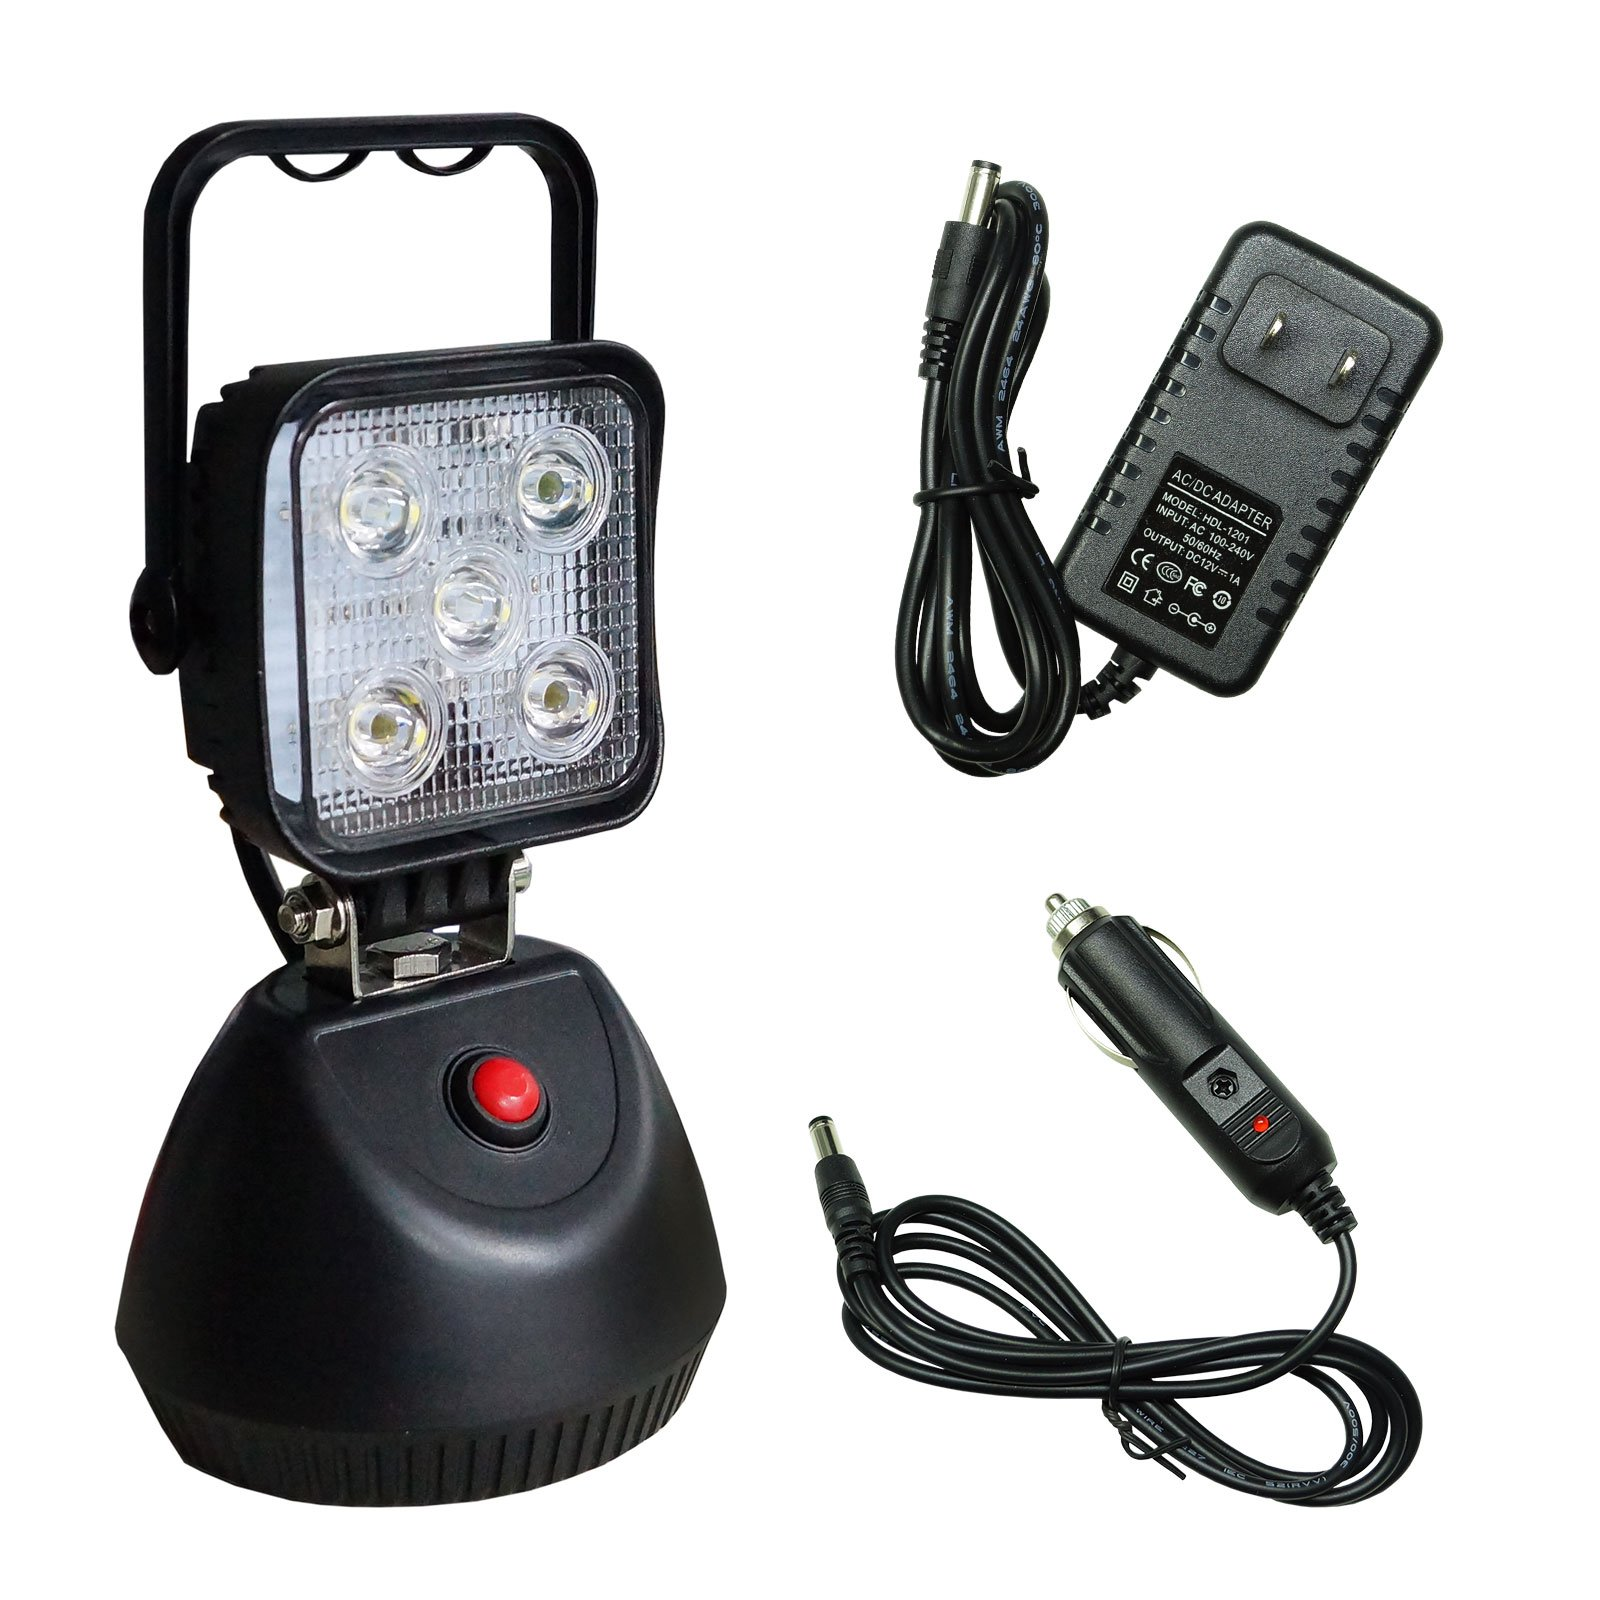 PA 1 Set Super Bright Version Multi-Functions LED Work Light Portable Rechargeable Magnetic Base 15W 1800LM